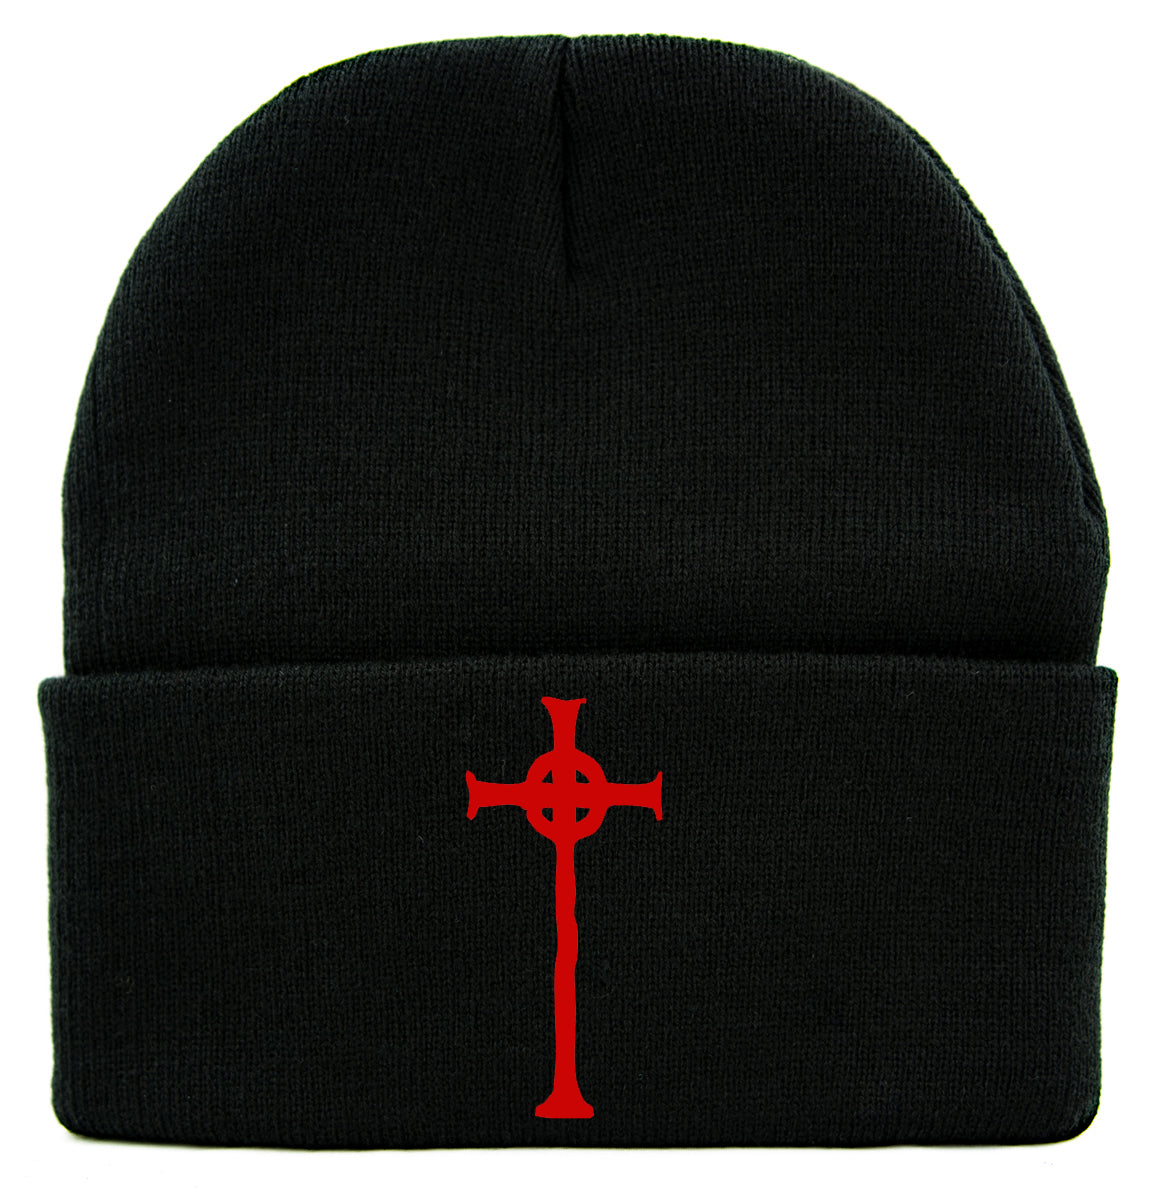 Red Vampire Hunter D Cross Tombstone Cuff Beanie Knit Cap Anime Horror Alternative Clothing